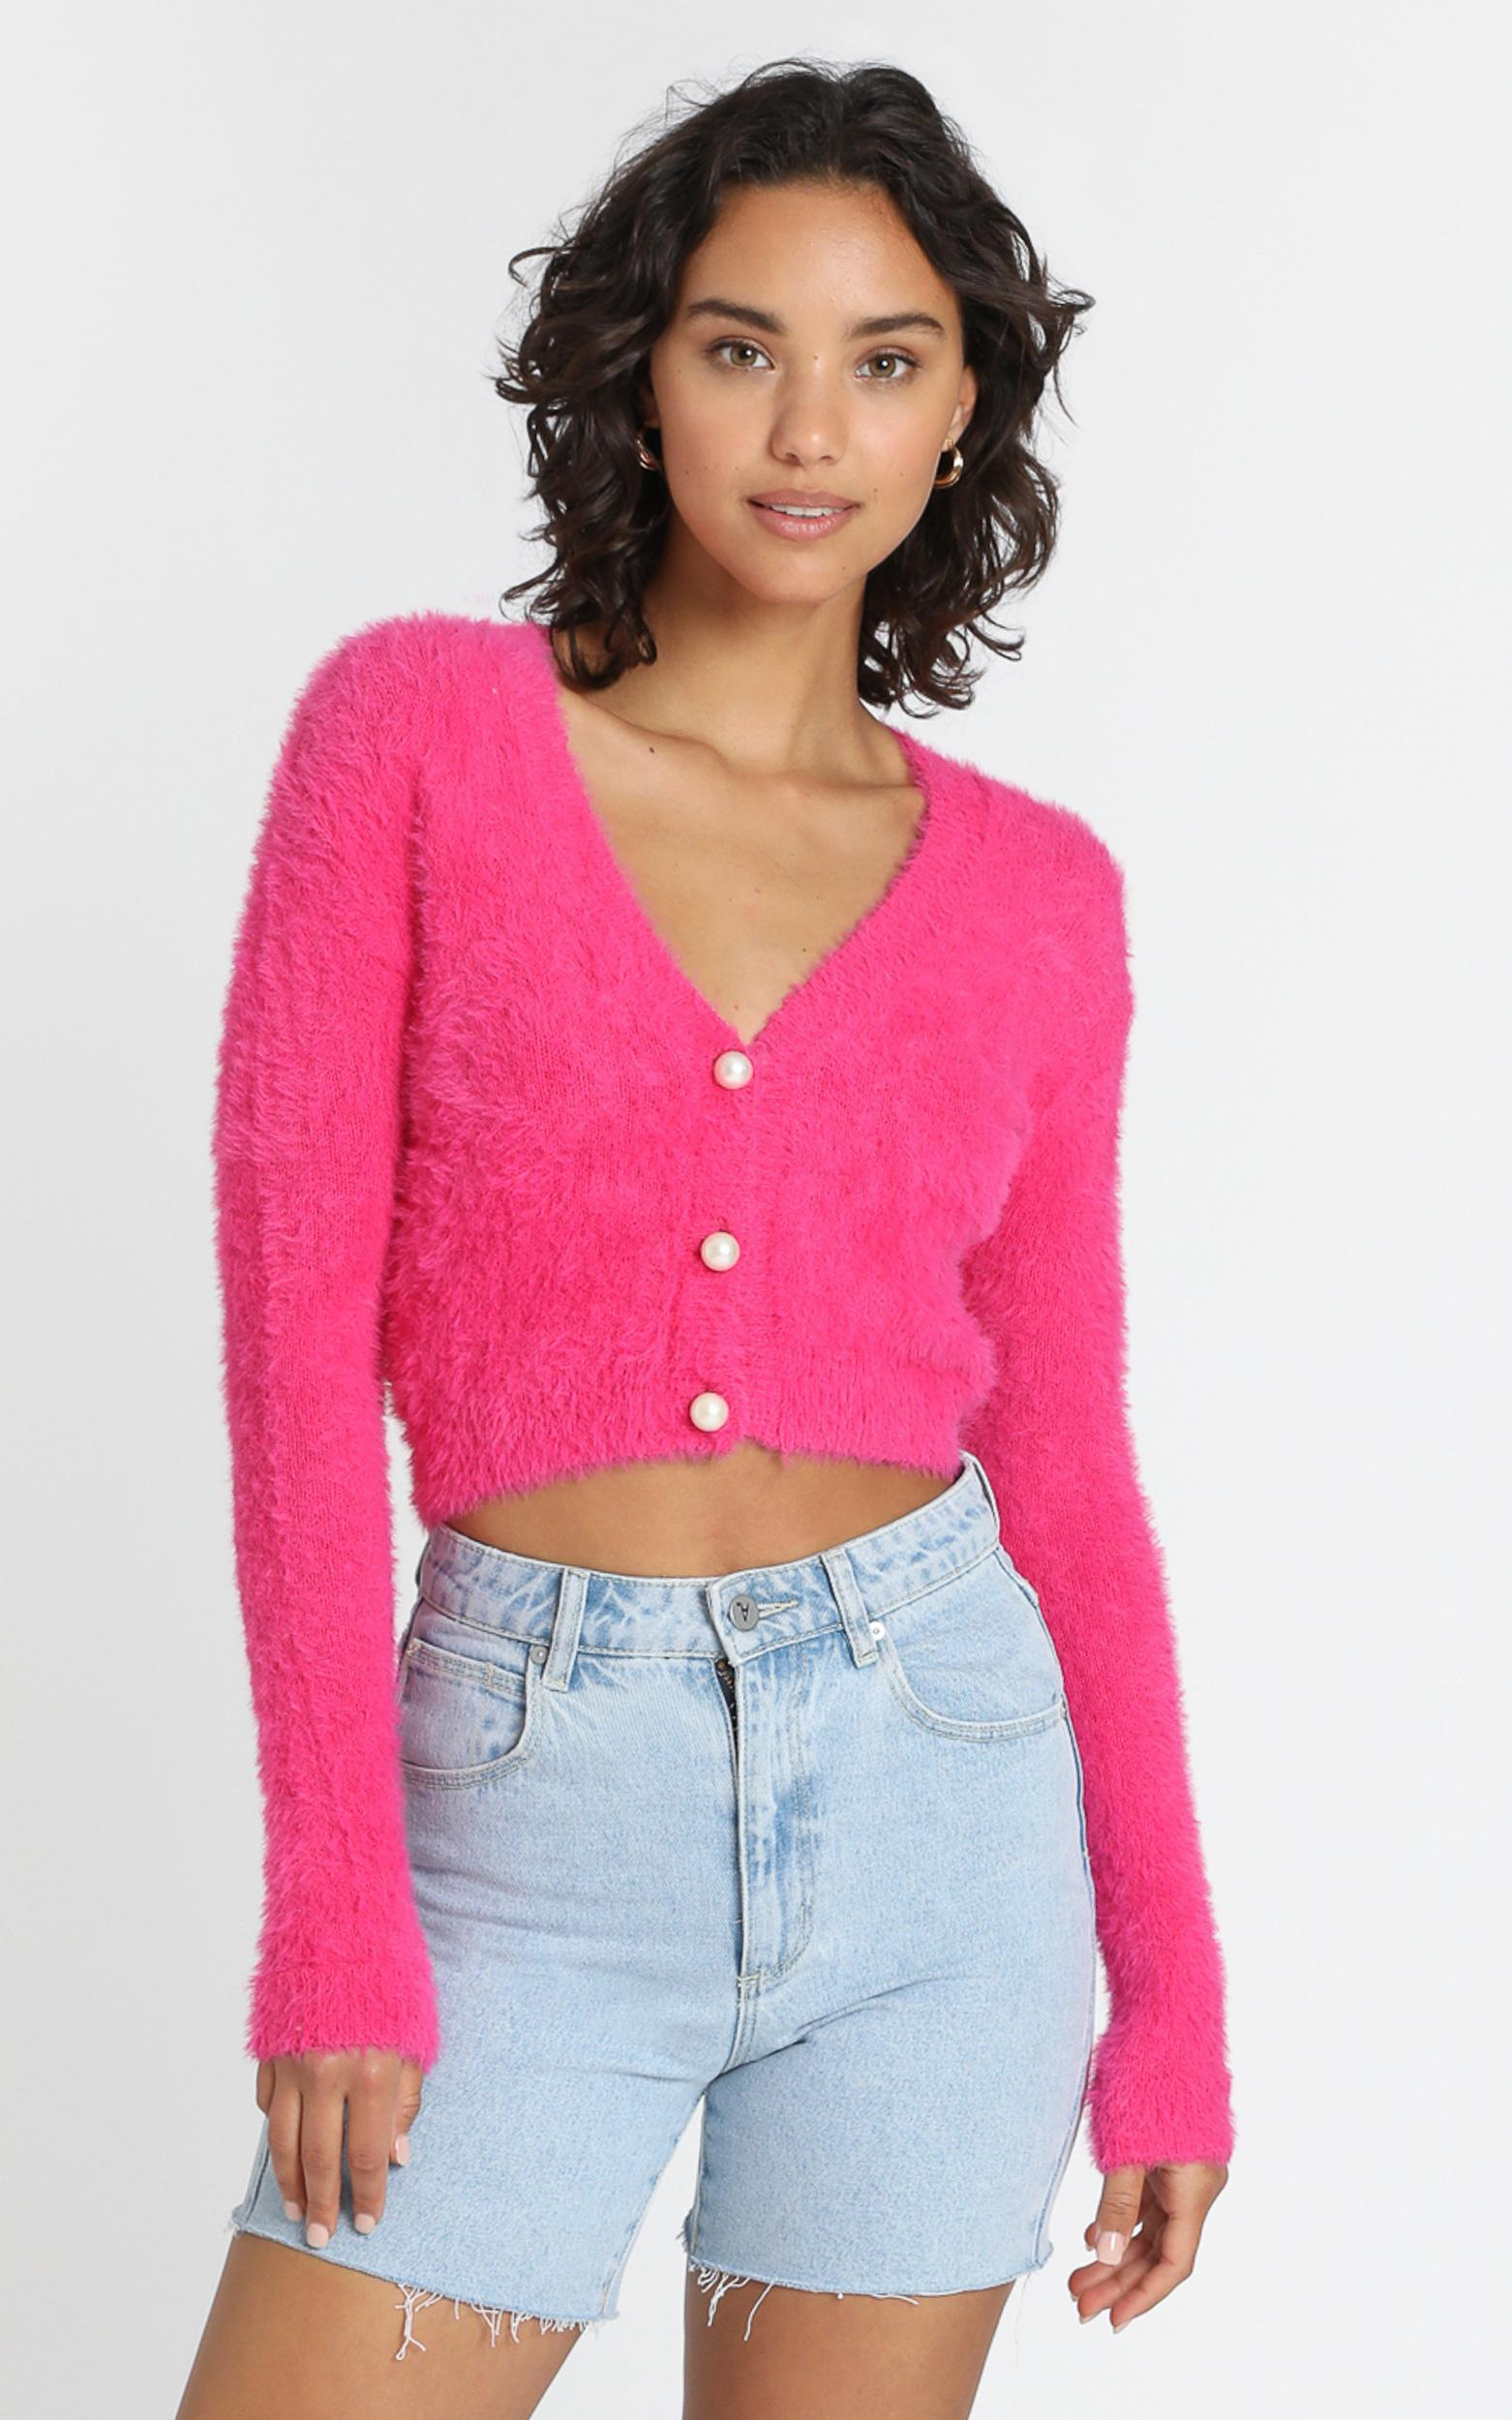 Vegas Baby Knit Top in hot pink - 6 (XS), Pink, hi-res image number null